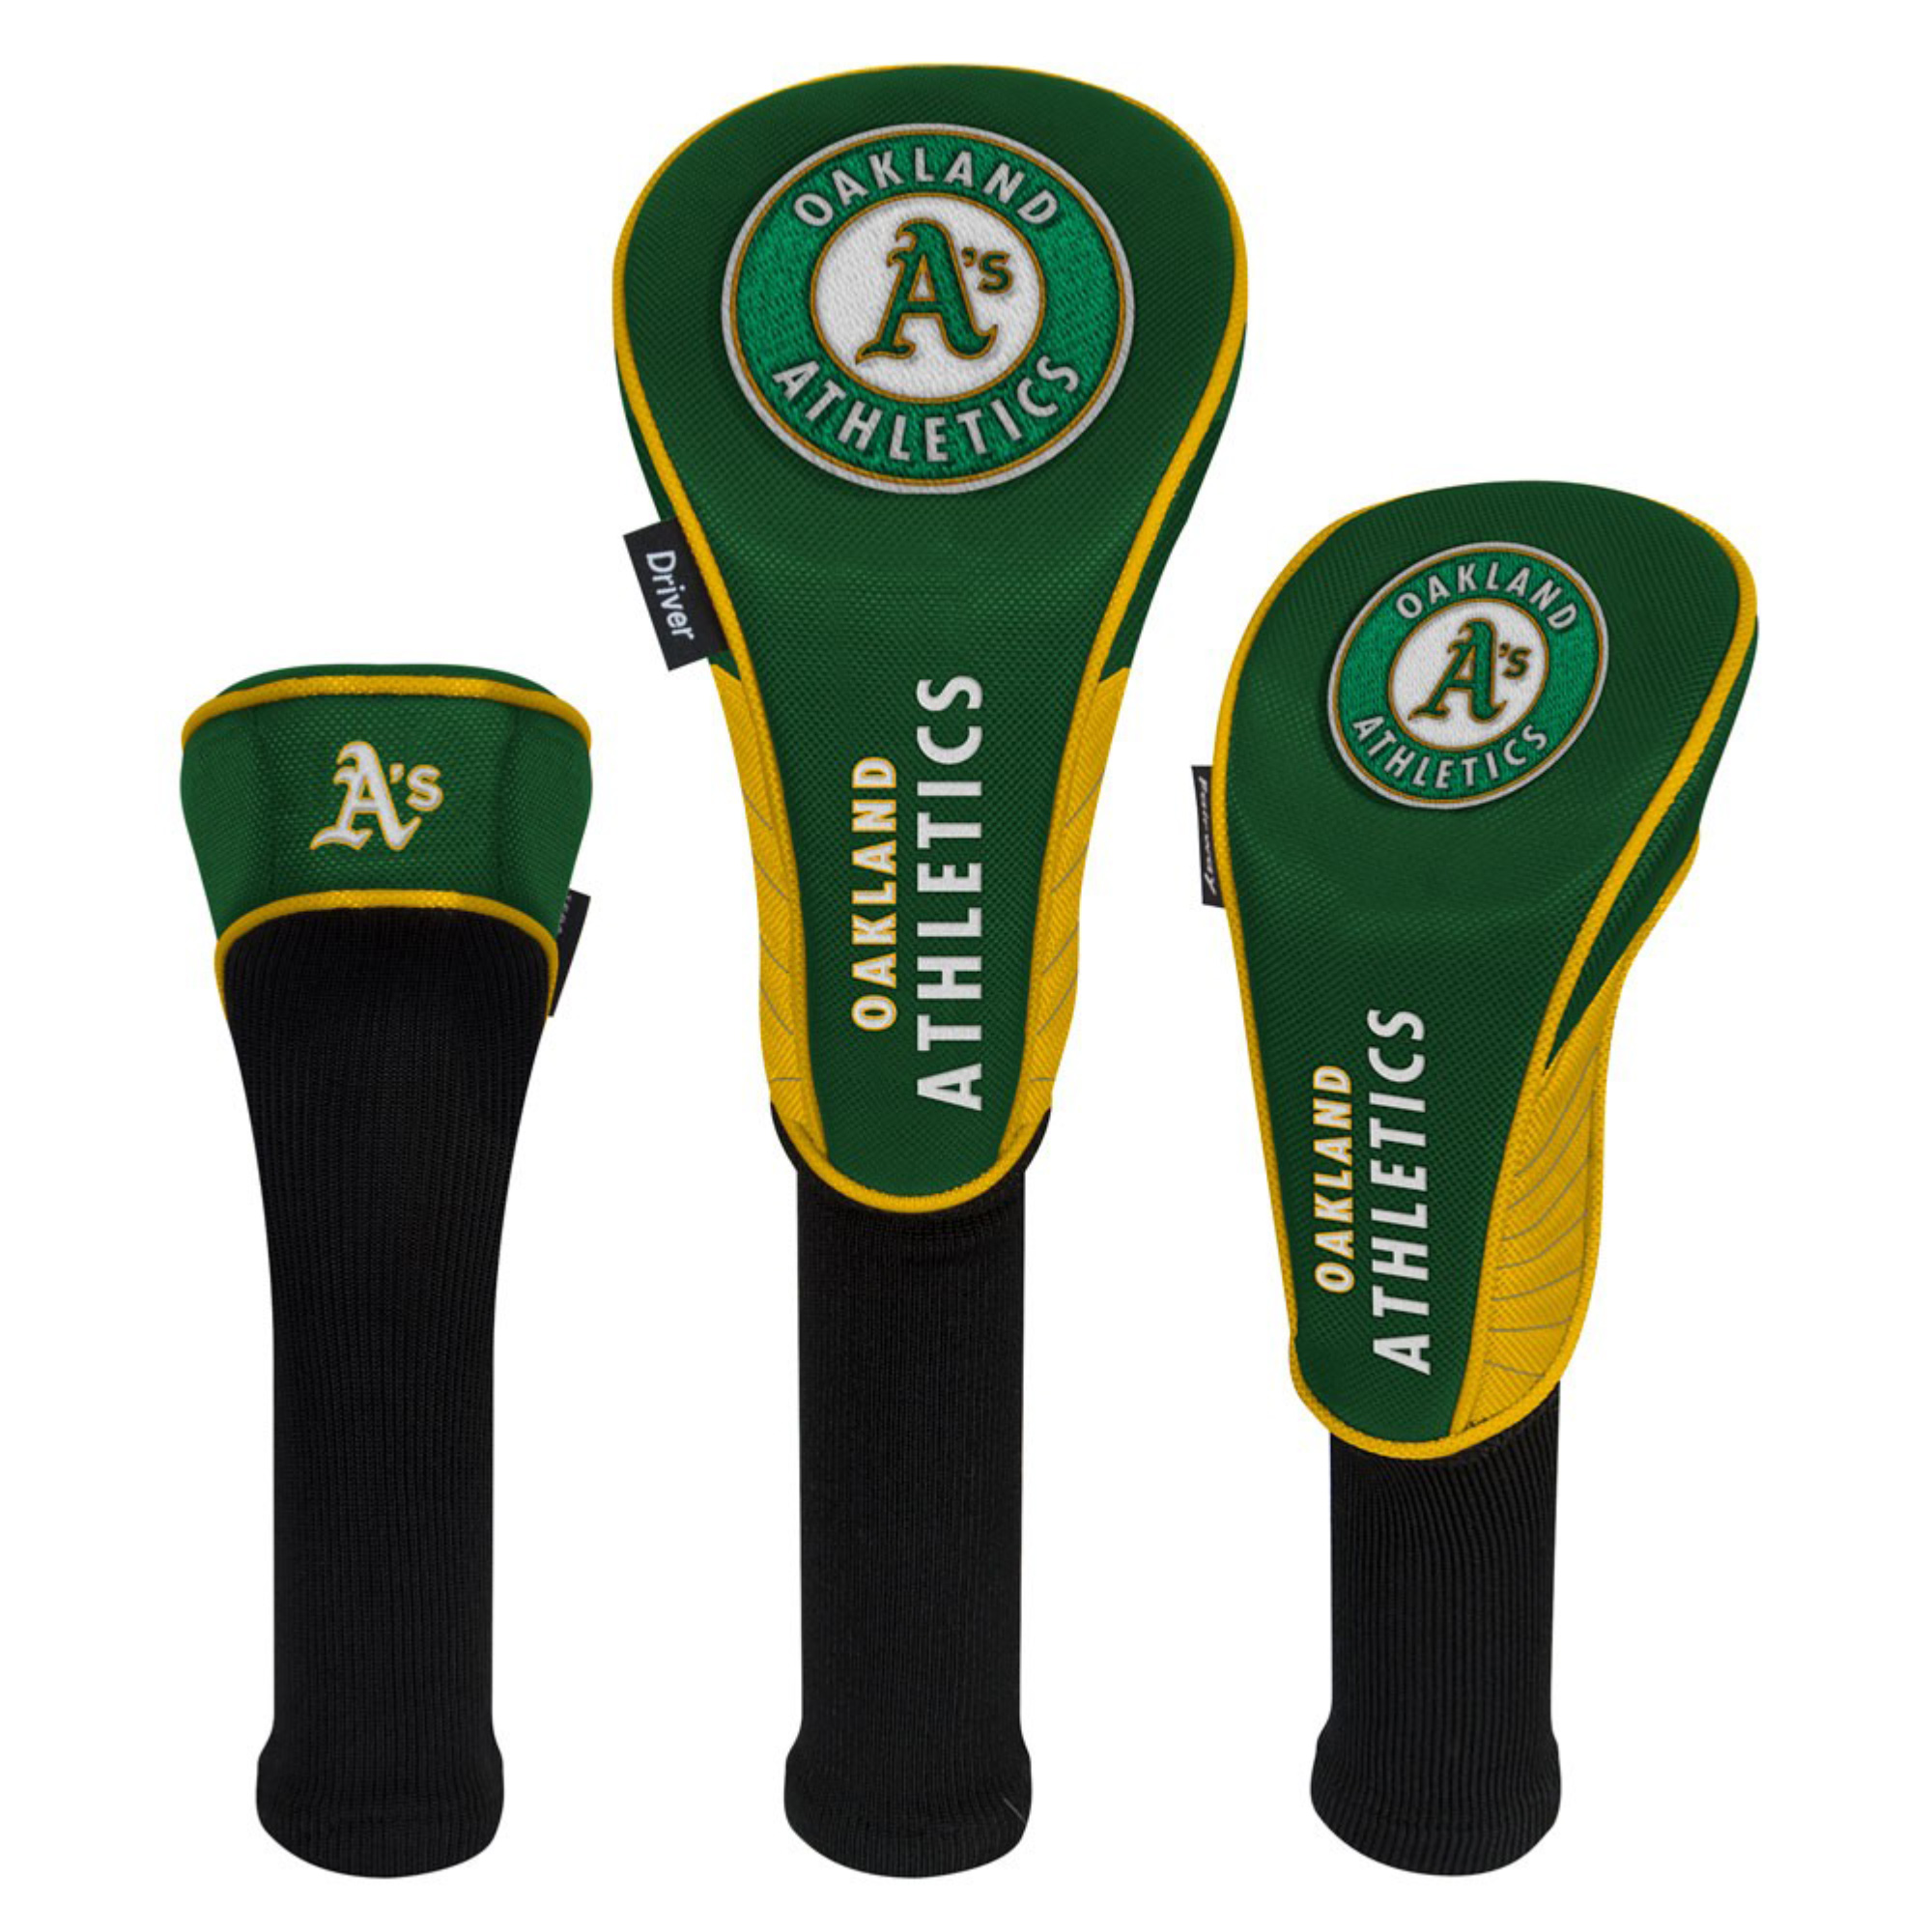 Oakland Athletics Driver Fairway Hybrid Set of Three Headcovers - No Size